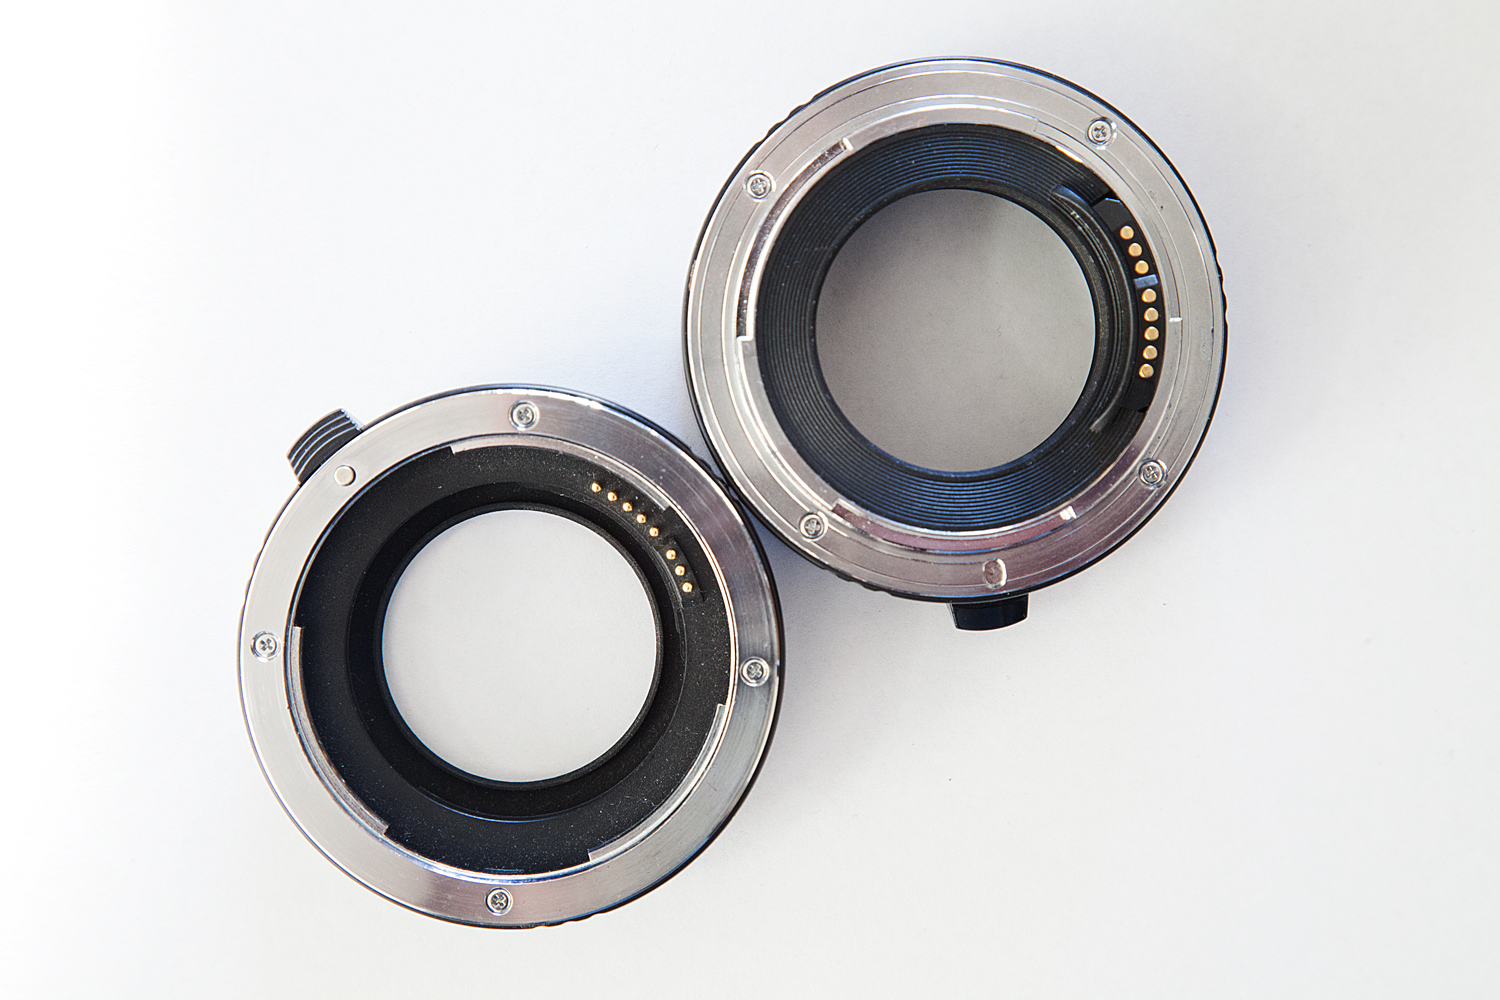 extension tubes together